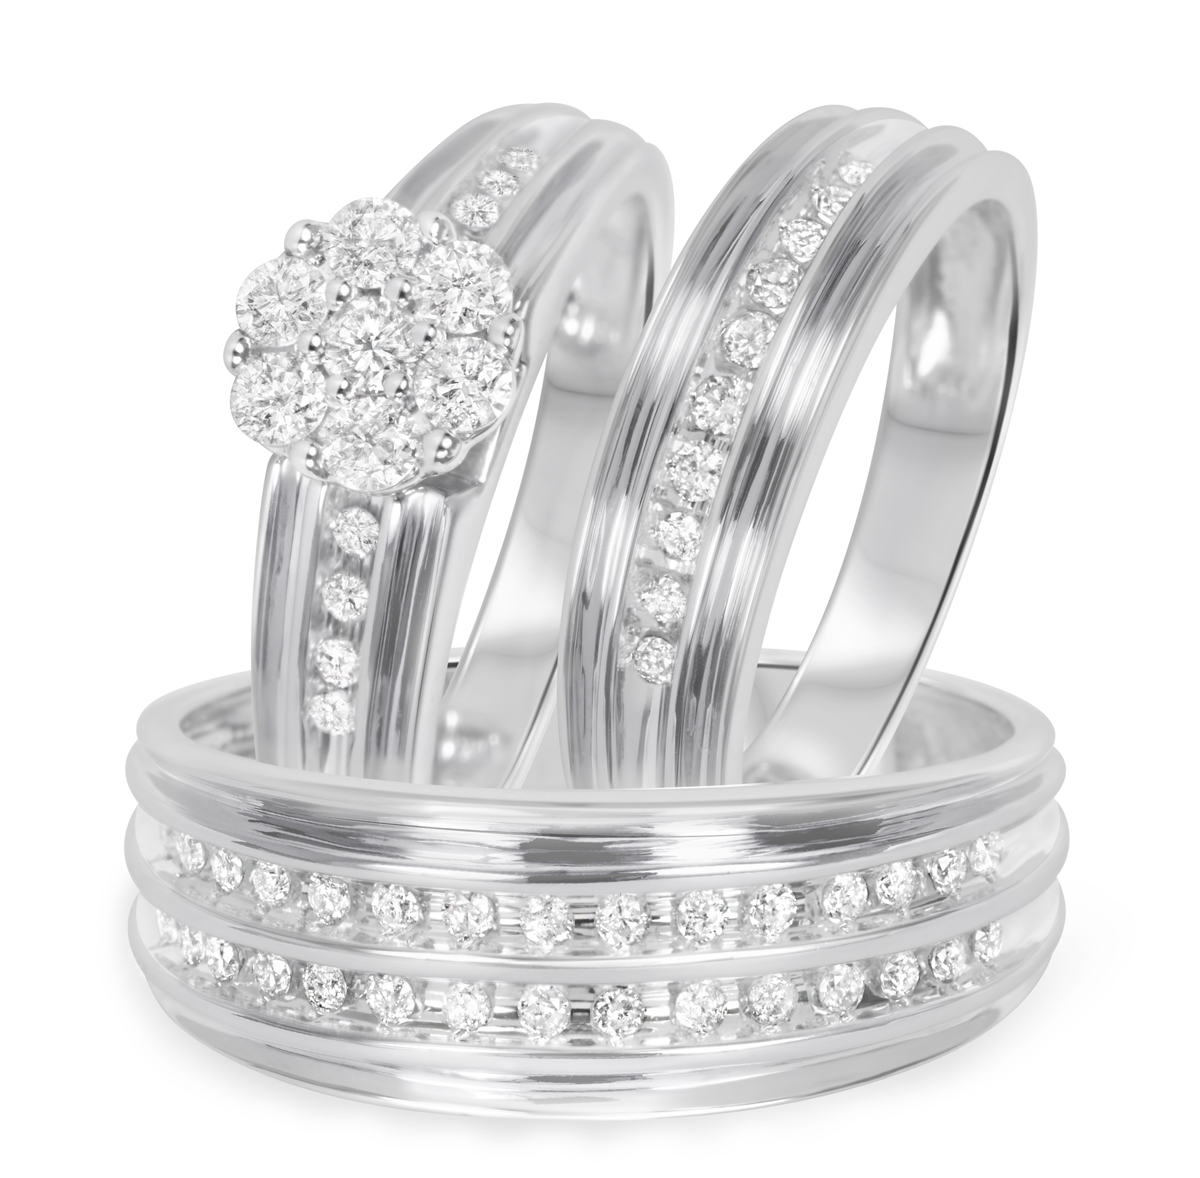 14k solid white yellow gold xo cz wedding rings trio trio wedding ring set Express